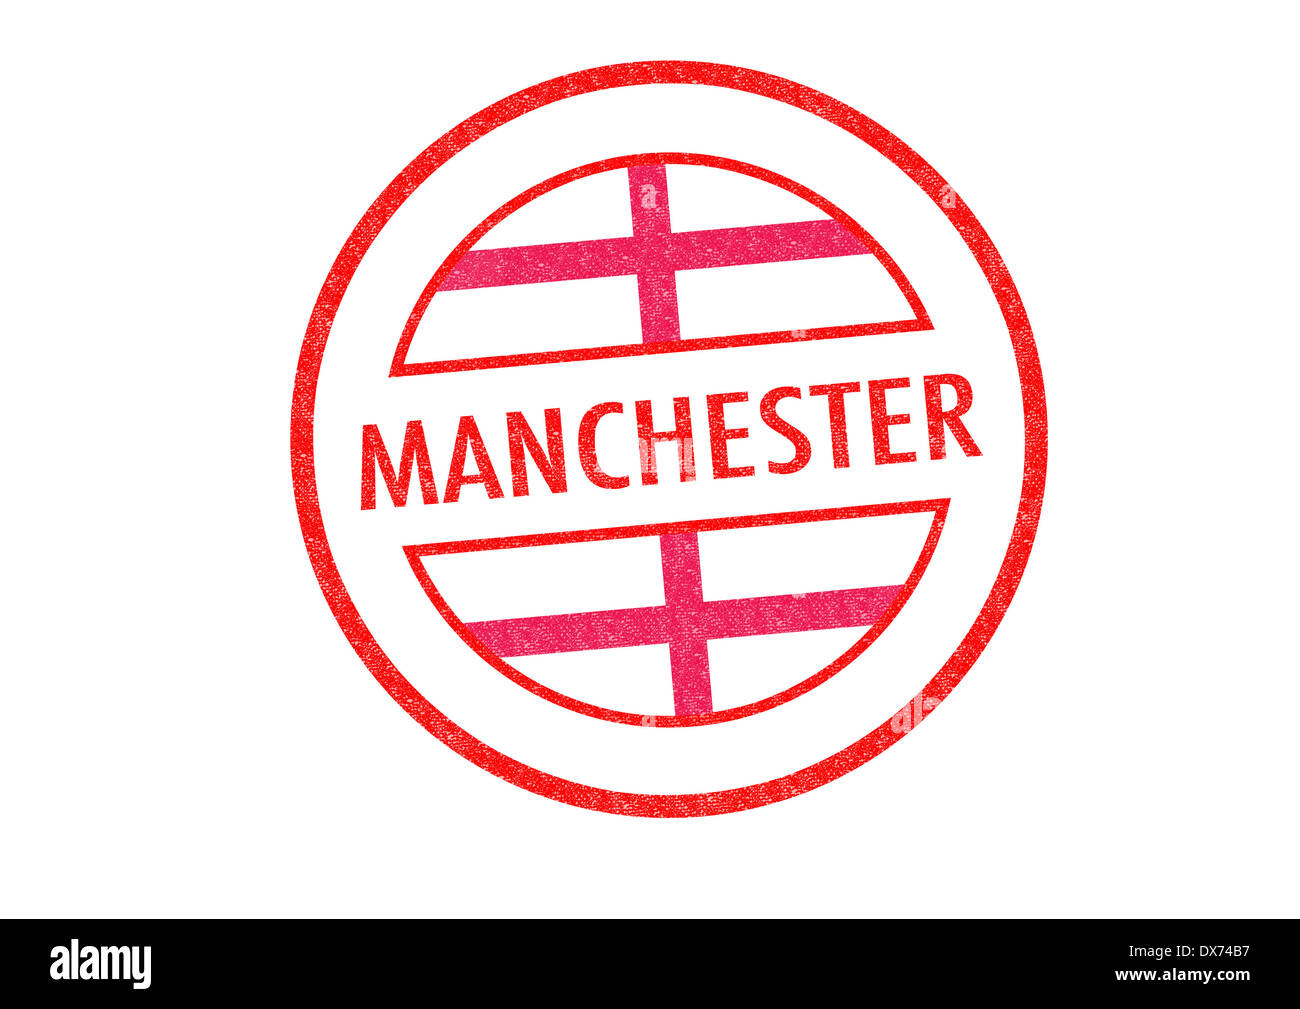 Passport Style MANCHESTER Rubber Stamp Over A White Background